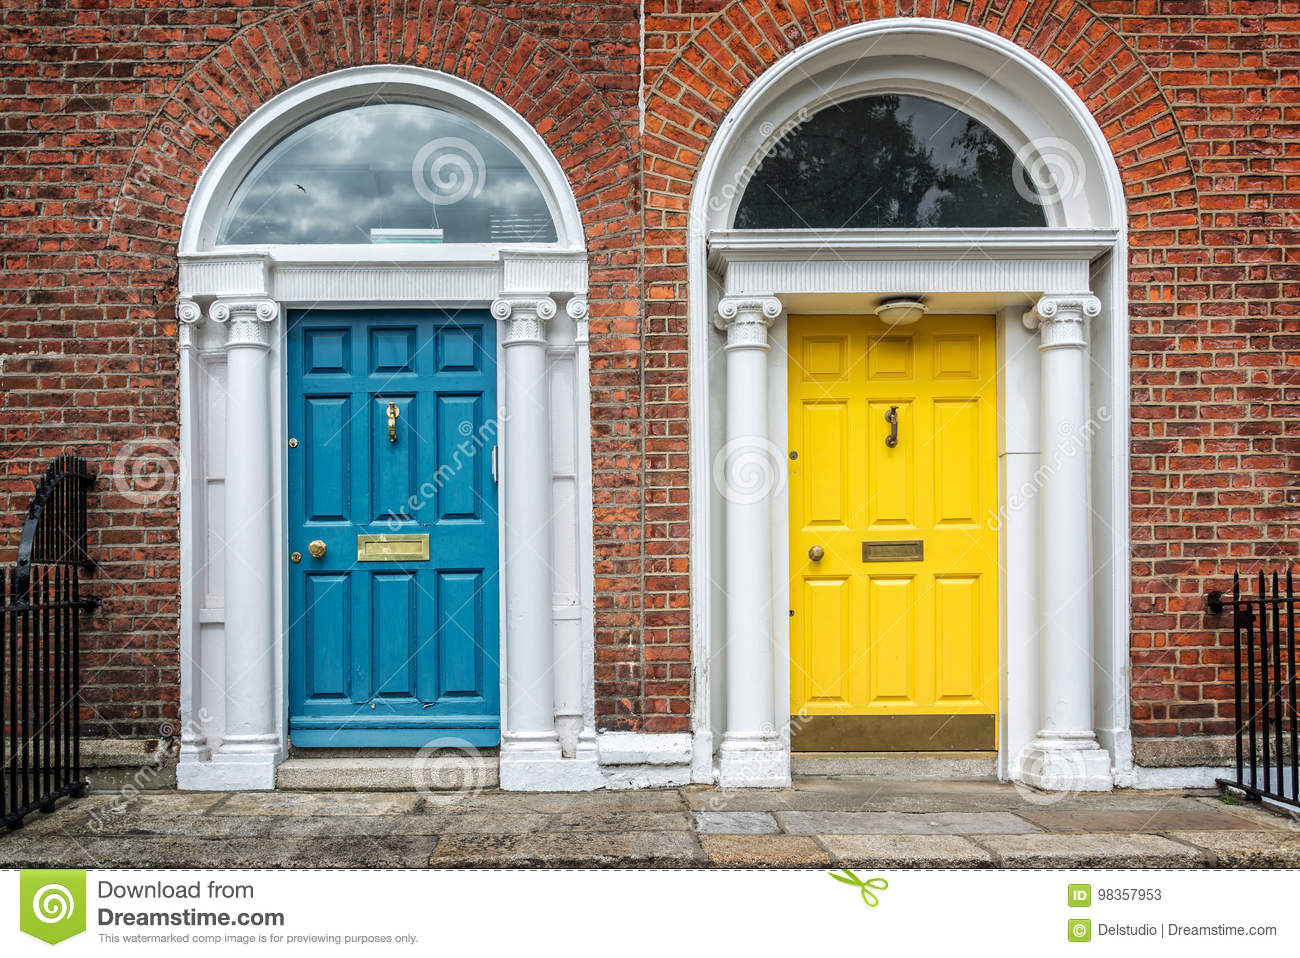 Blue and yellow classic doors in Dublin example of georgian typical architecture of Dublin, Ireland